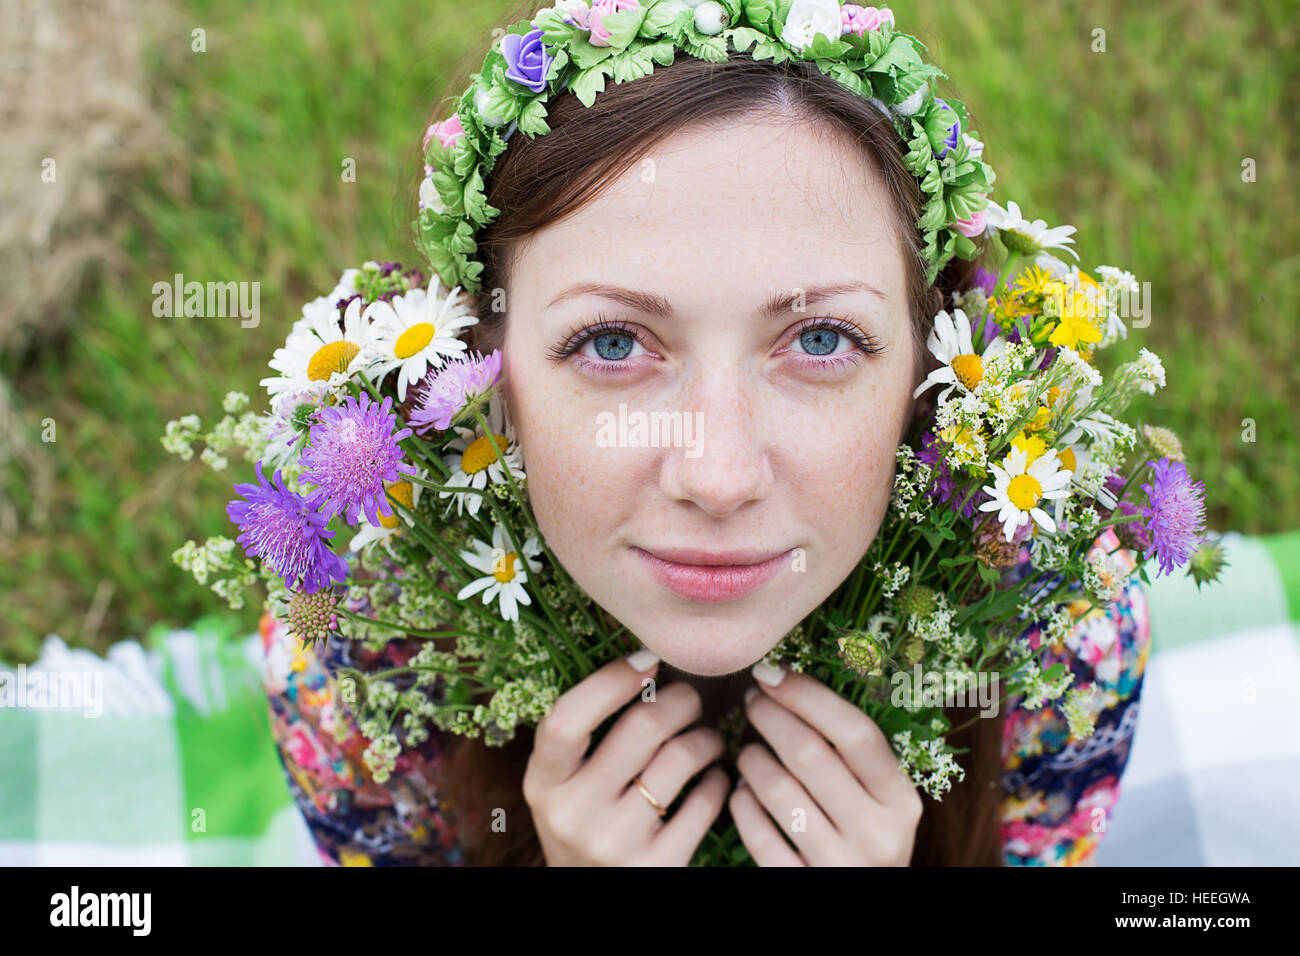 Freckled girl sitting with splitting wild flower bouquet - Stock Image